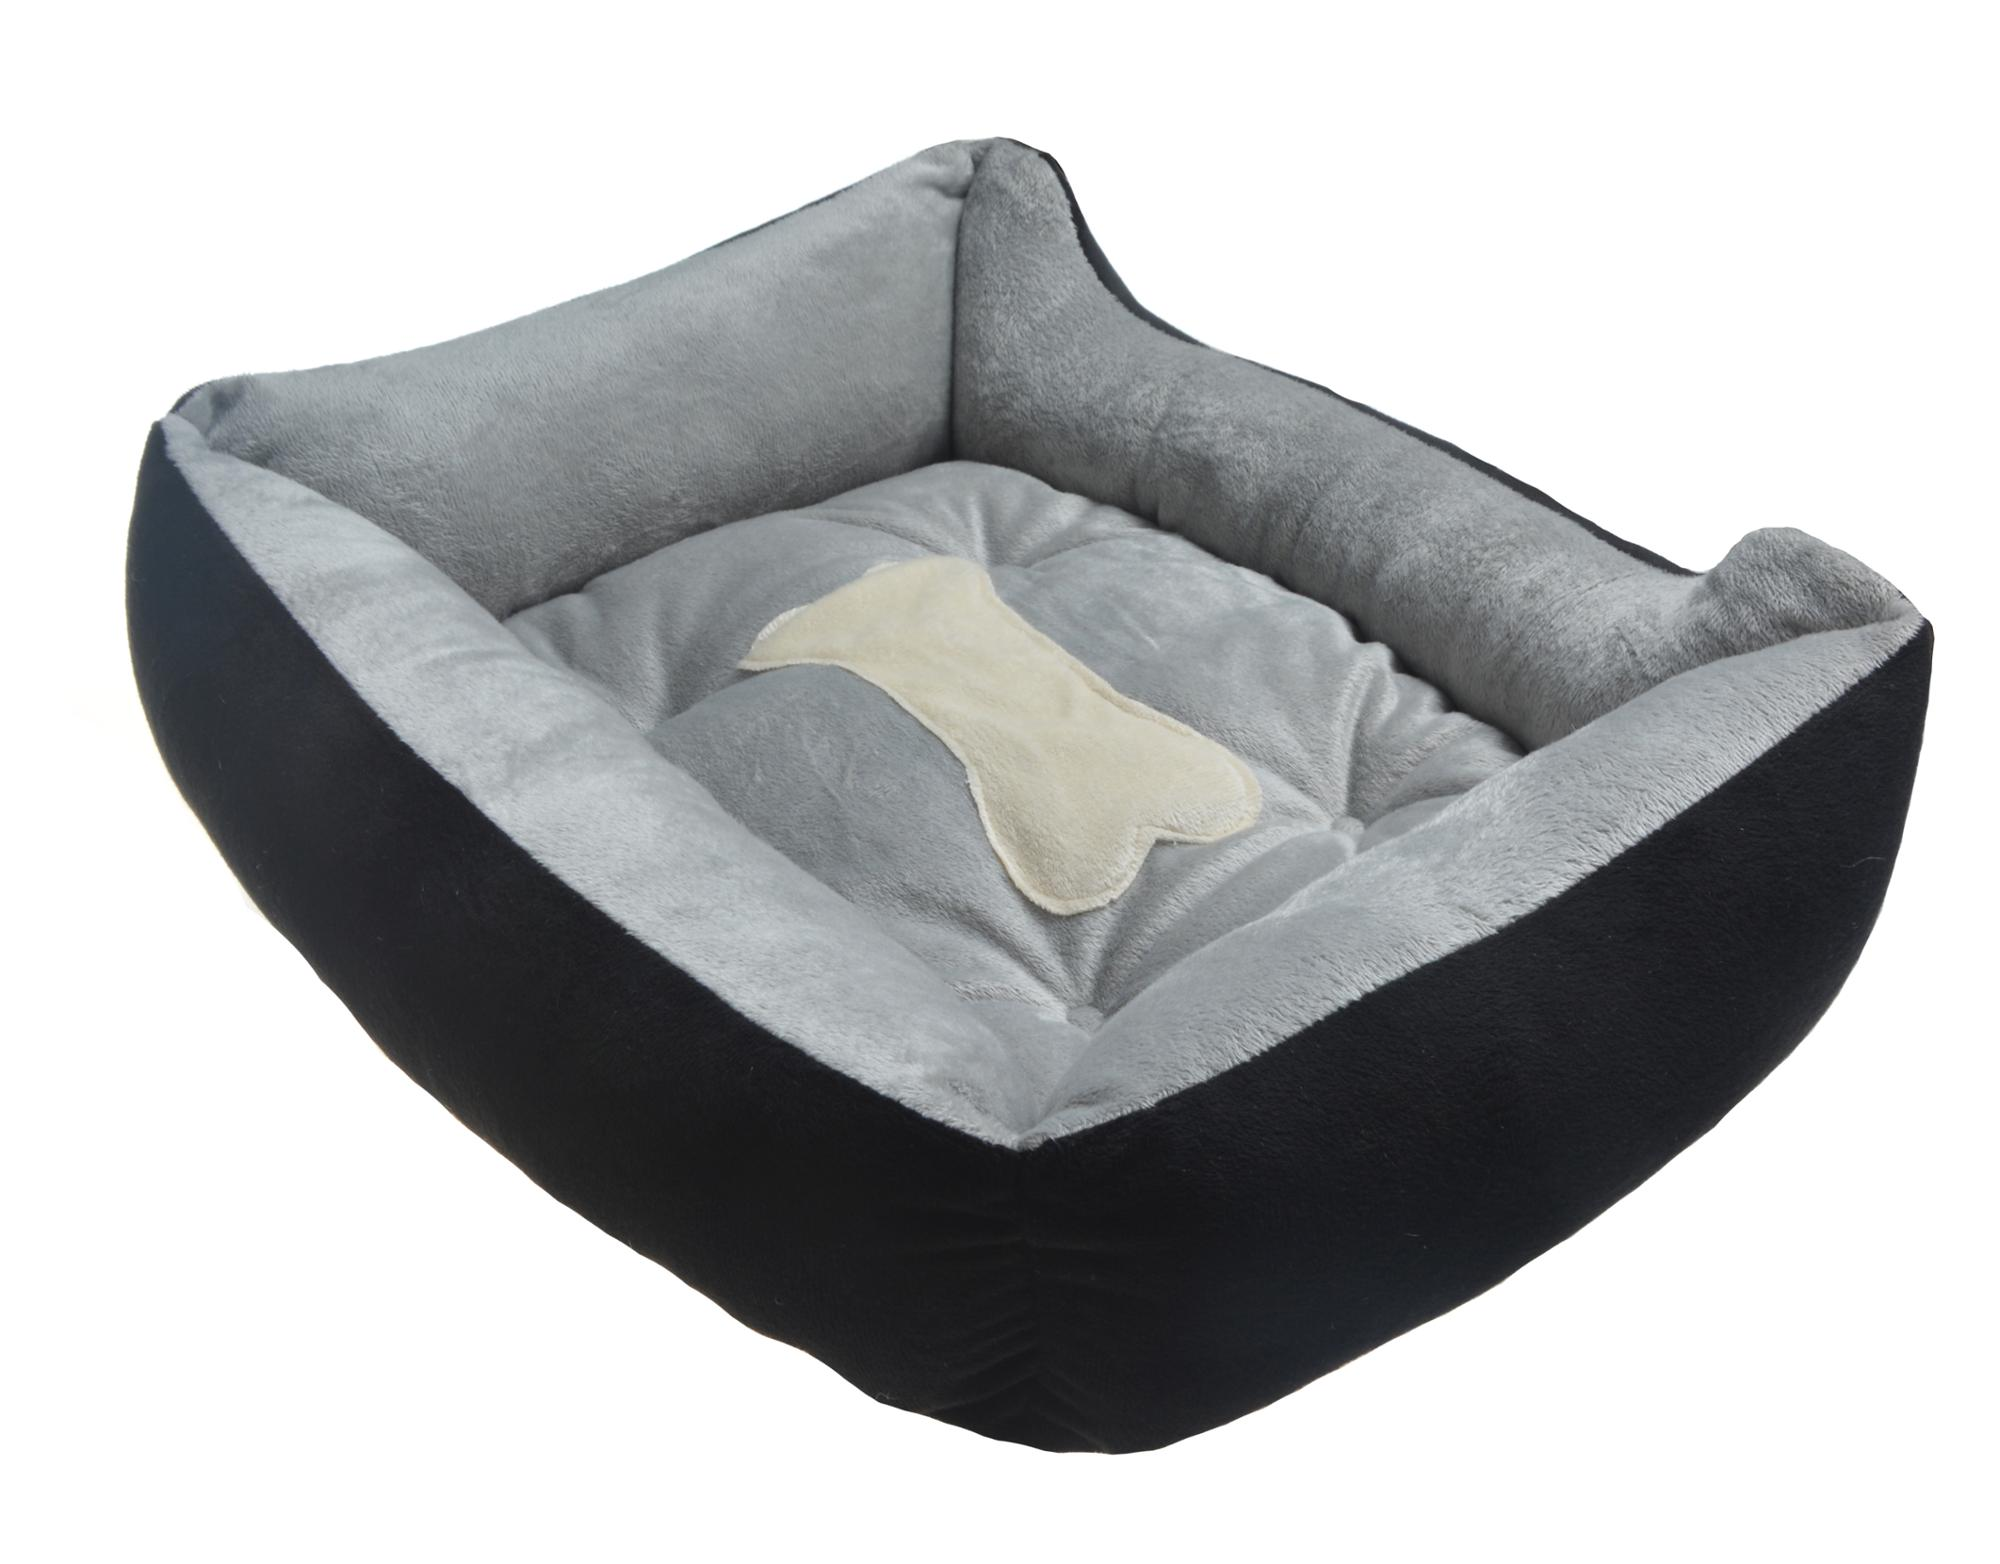 Sunland pet self warming beds for Cat or Dog SOFA Bed -Thick, Bolstered Ultra-Soft Microfiber Black